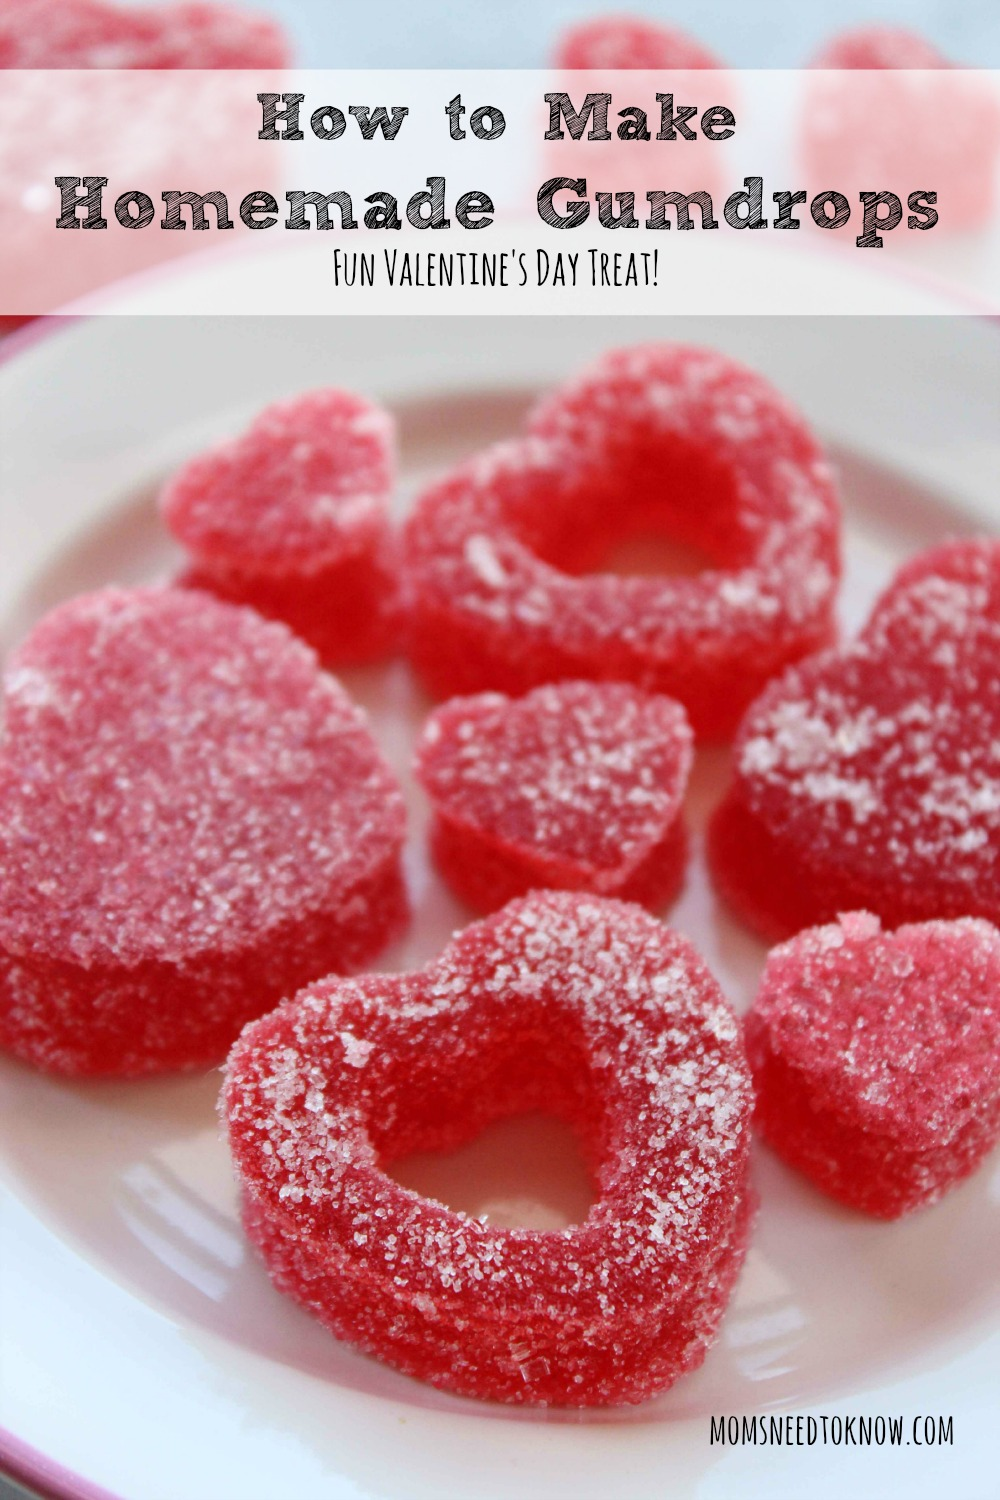 These homemade gumdrops and so easy to make and you can easily change up the flavor. Your children will have fun making them with you!